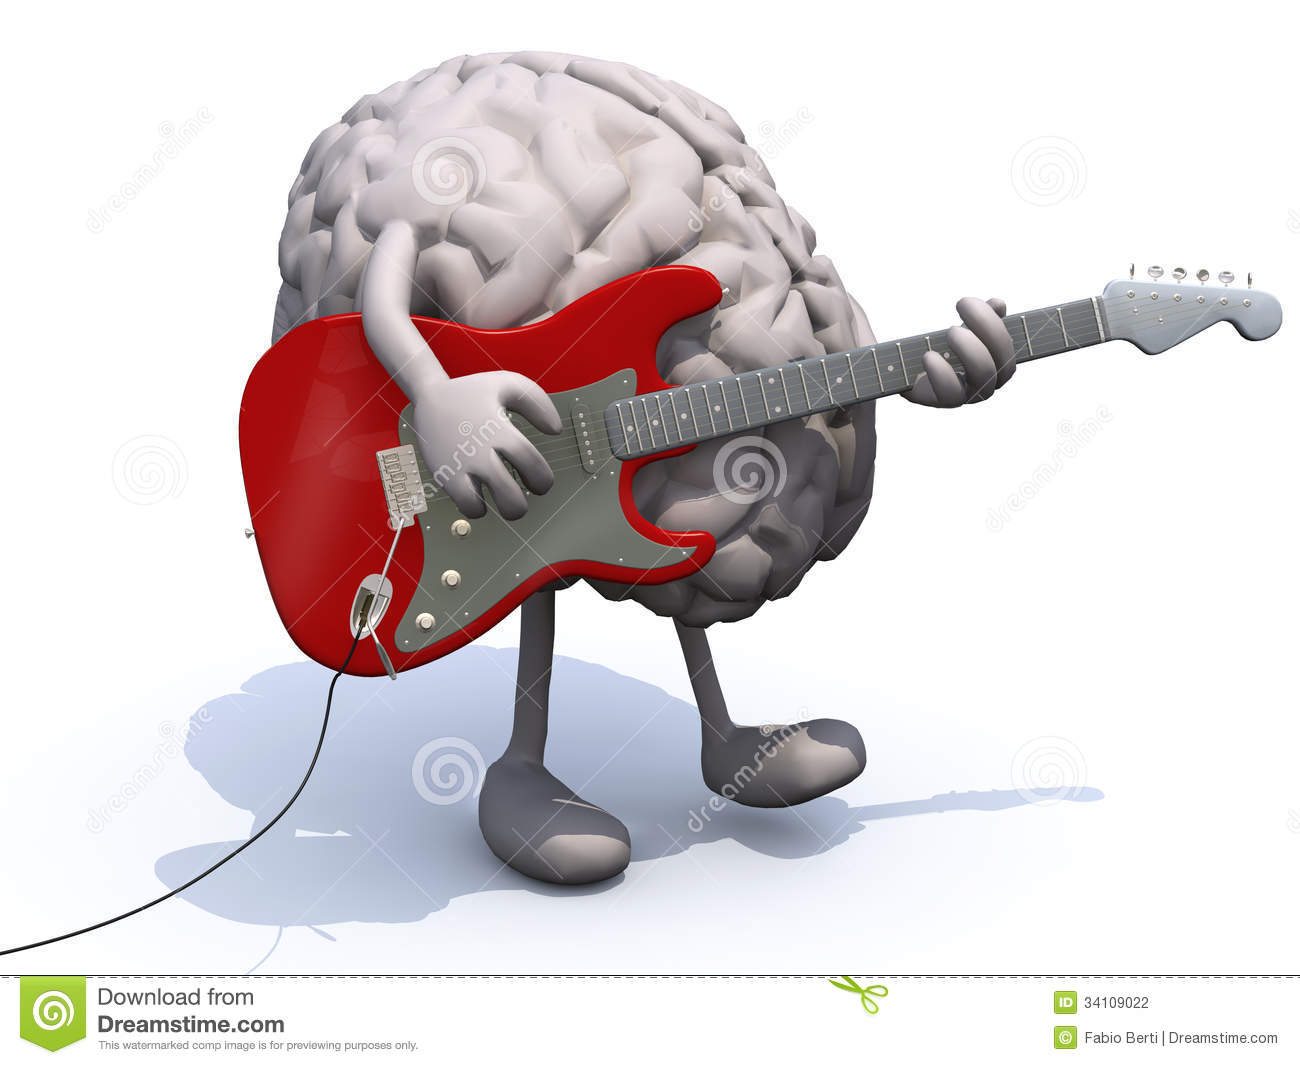 Idea 595b40b65ba036ed117d427c further Decision Making Strategy May Shed Light On Adhd Schizophrenia besides 20 The Ups And Downs Of Teleportation as well 10 Funniest Looking Animals On Earth in addition Stock Photography Human Brain Arms Legs Playing Guitar Learning Music Concepts Image34109022. on brain light